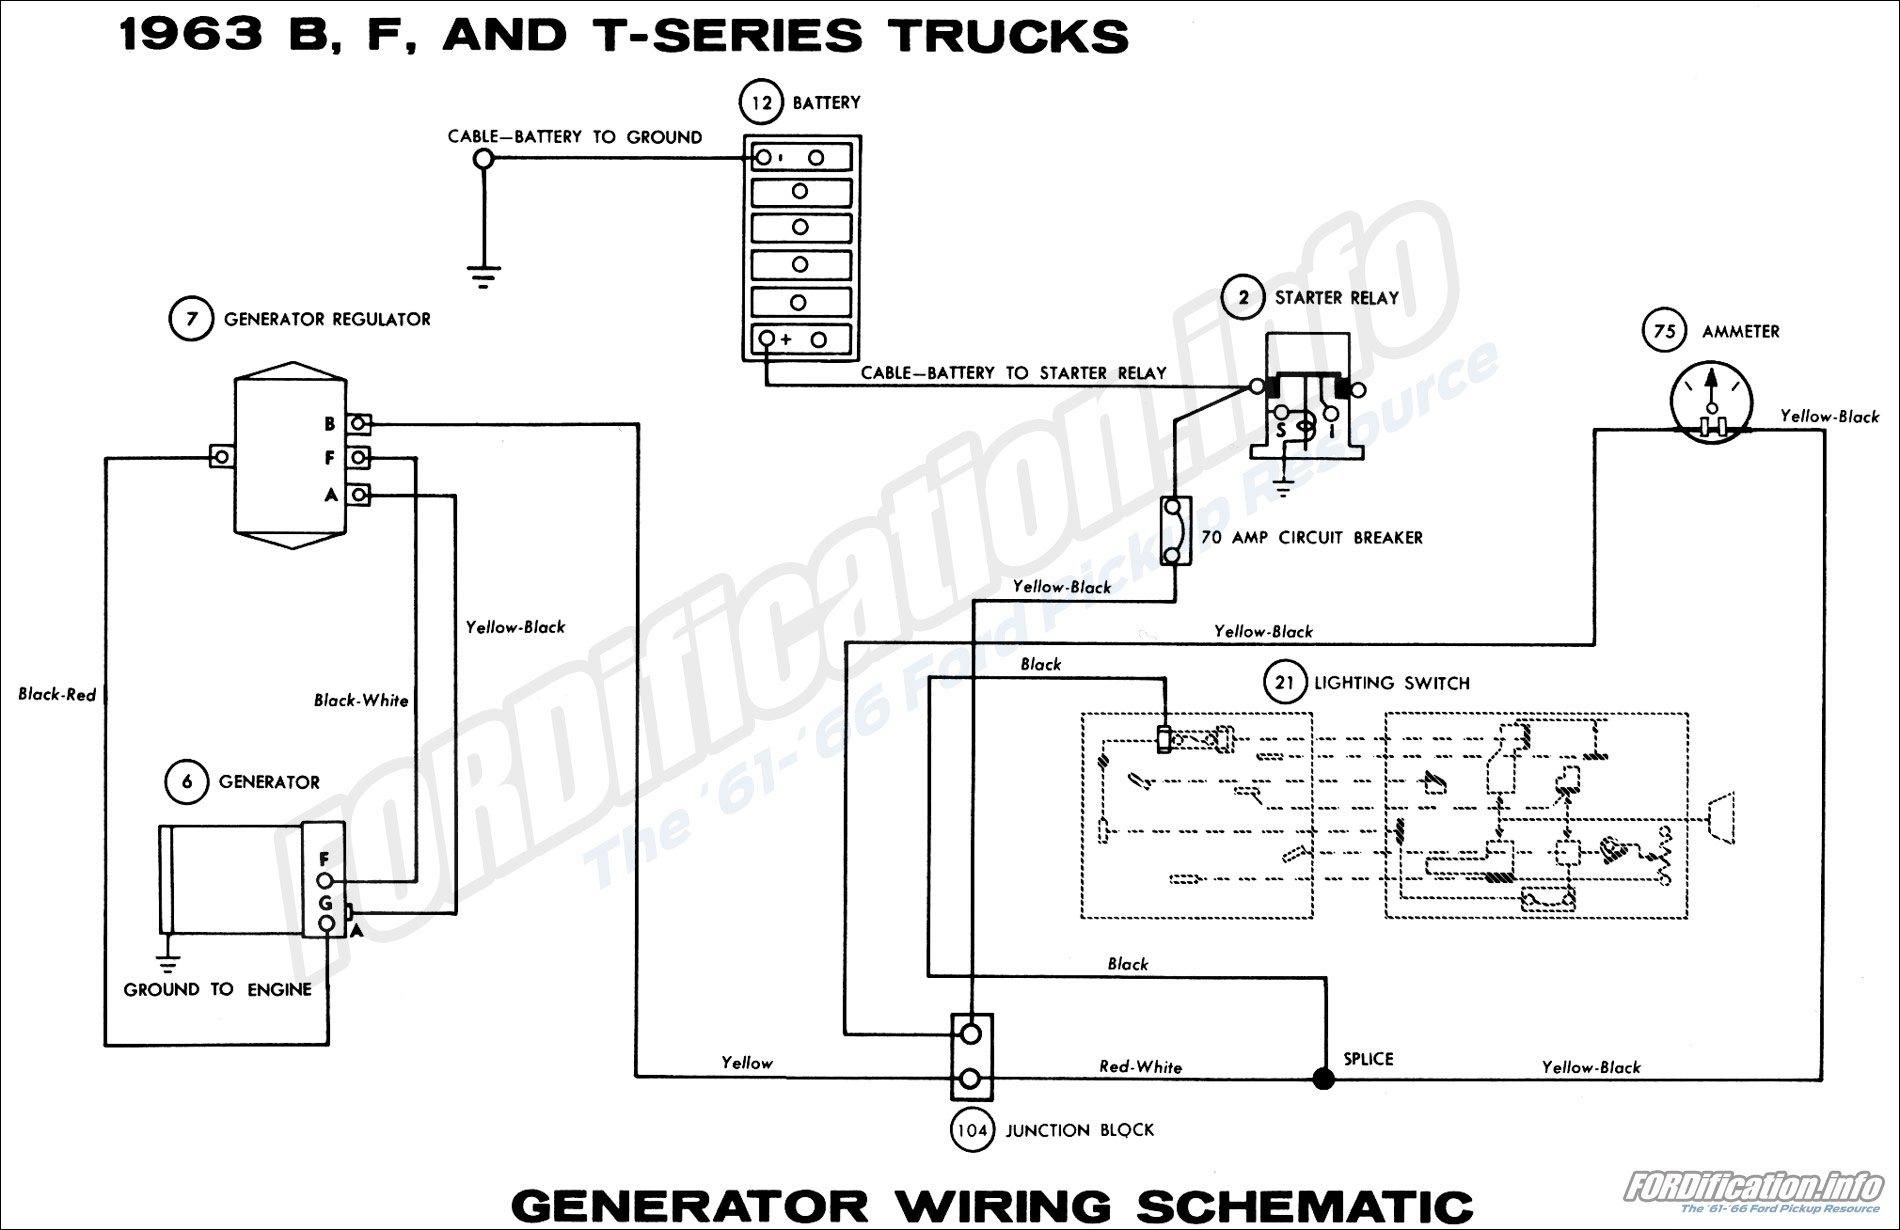 62 Ford Generator Wiring Diagram Diy Diagrams Tractor 12v 1963 Truck Fordification Info The 61 66 Rh